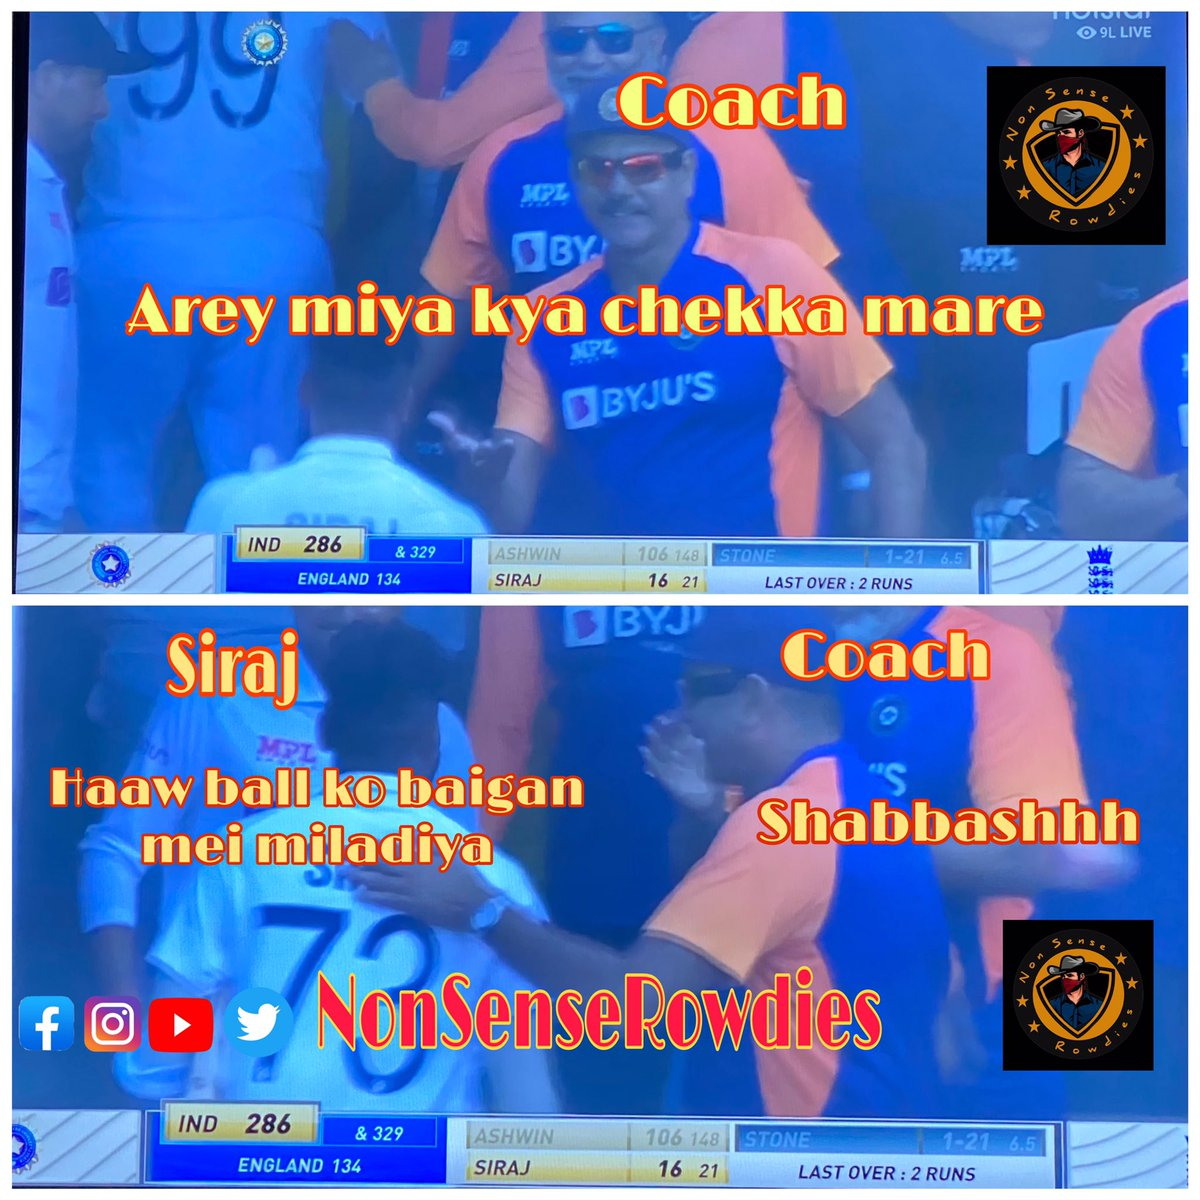 @RaviShastriOfc : Arey miya kya chekka (6) mare  #SirajMohammed  : Haaw ball ko baigan mei miladiya   @RaviShastriOfc : Shabbashhh  #INDvsENG  #INDvsAUSTest #nsr #nonsenserowdies #ash #siraj #BCCI #cricketmemes #hyderabadi #playbold #rcb #RishabhPant #IPLAuction #7NEWS #TV9News